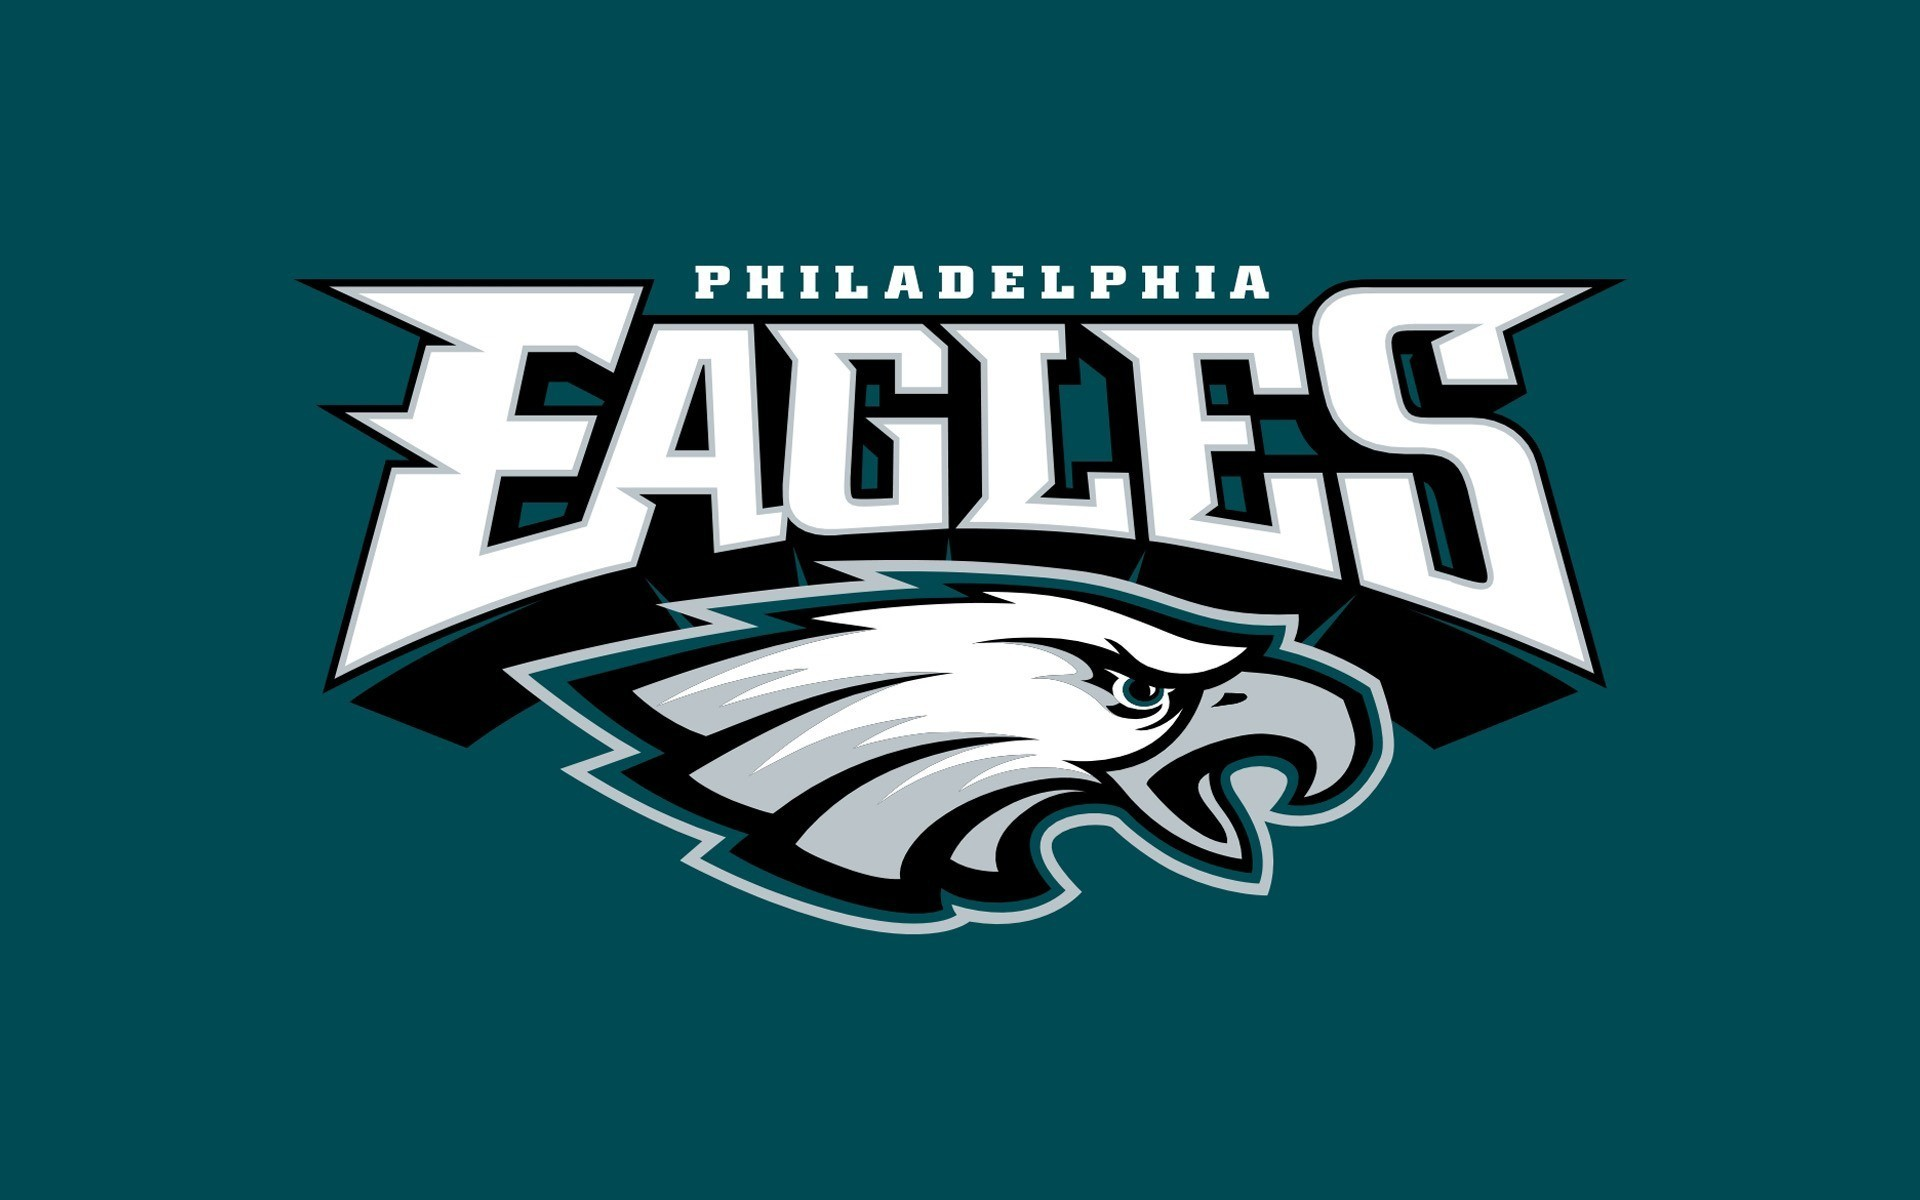 1920x1200 Philadelphia Eagles Wallpaper.